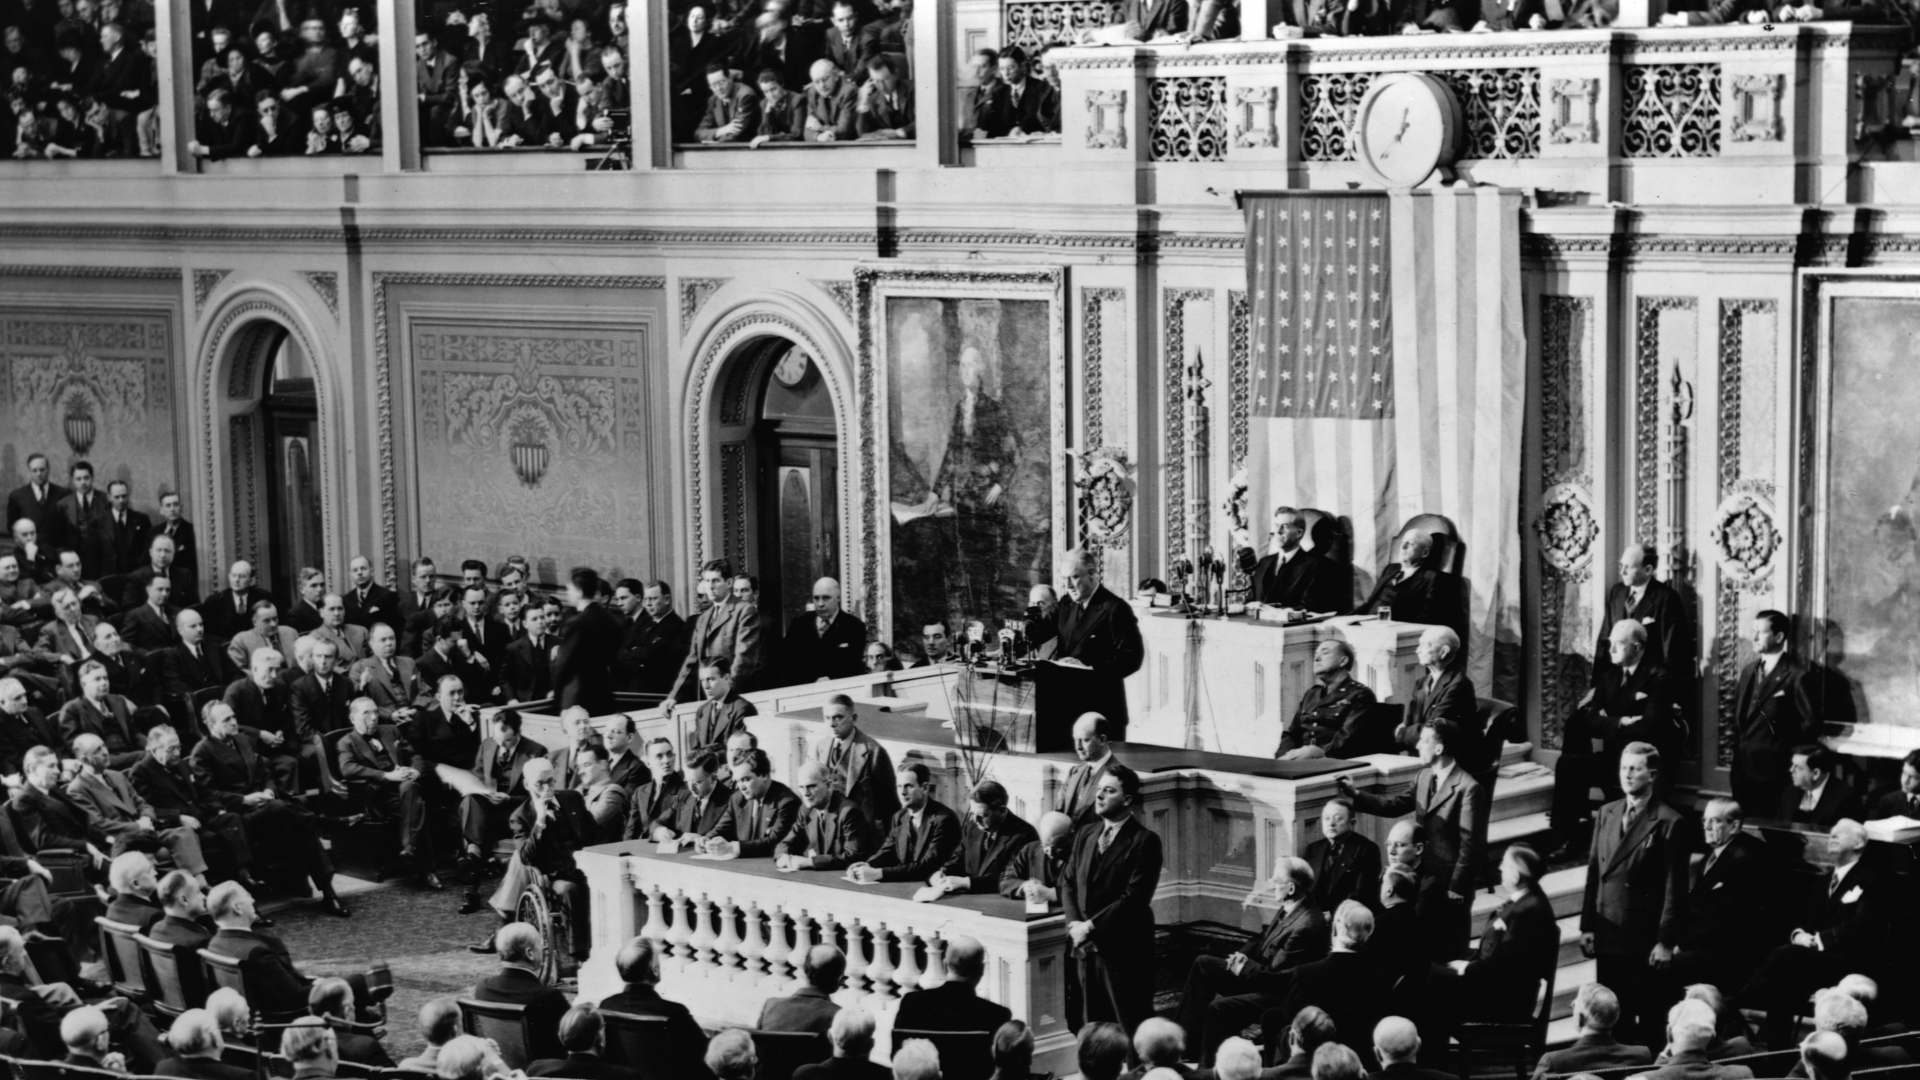 President Franklin Delano delivers his 1941 State of the Union address to a joint session of Congress. (Credit: Library of Congress/Corbis/VCG via Getty Images)